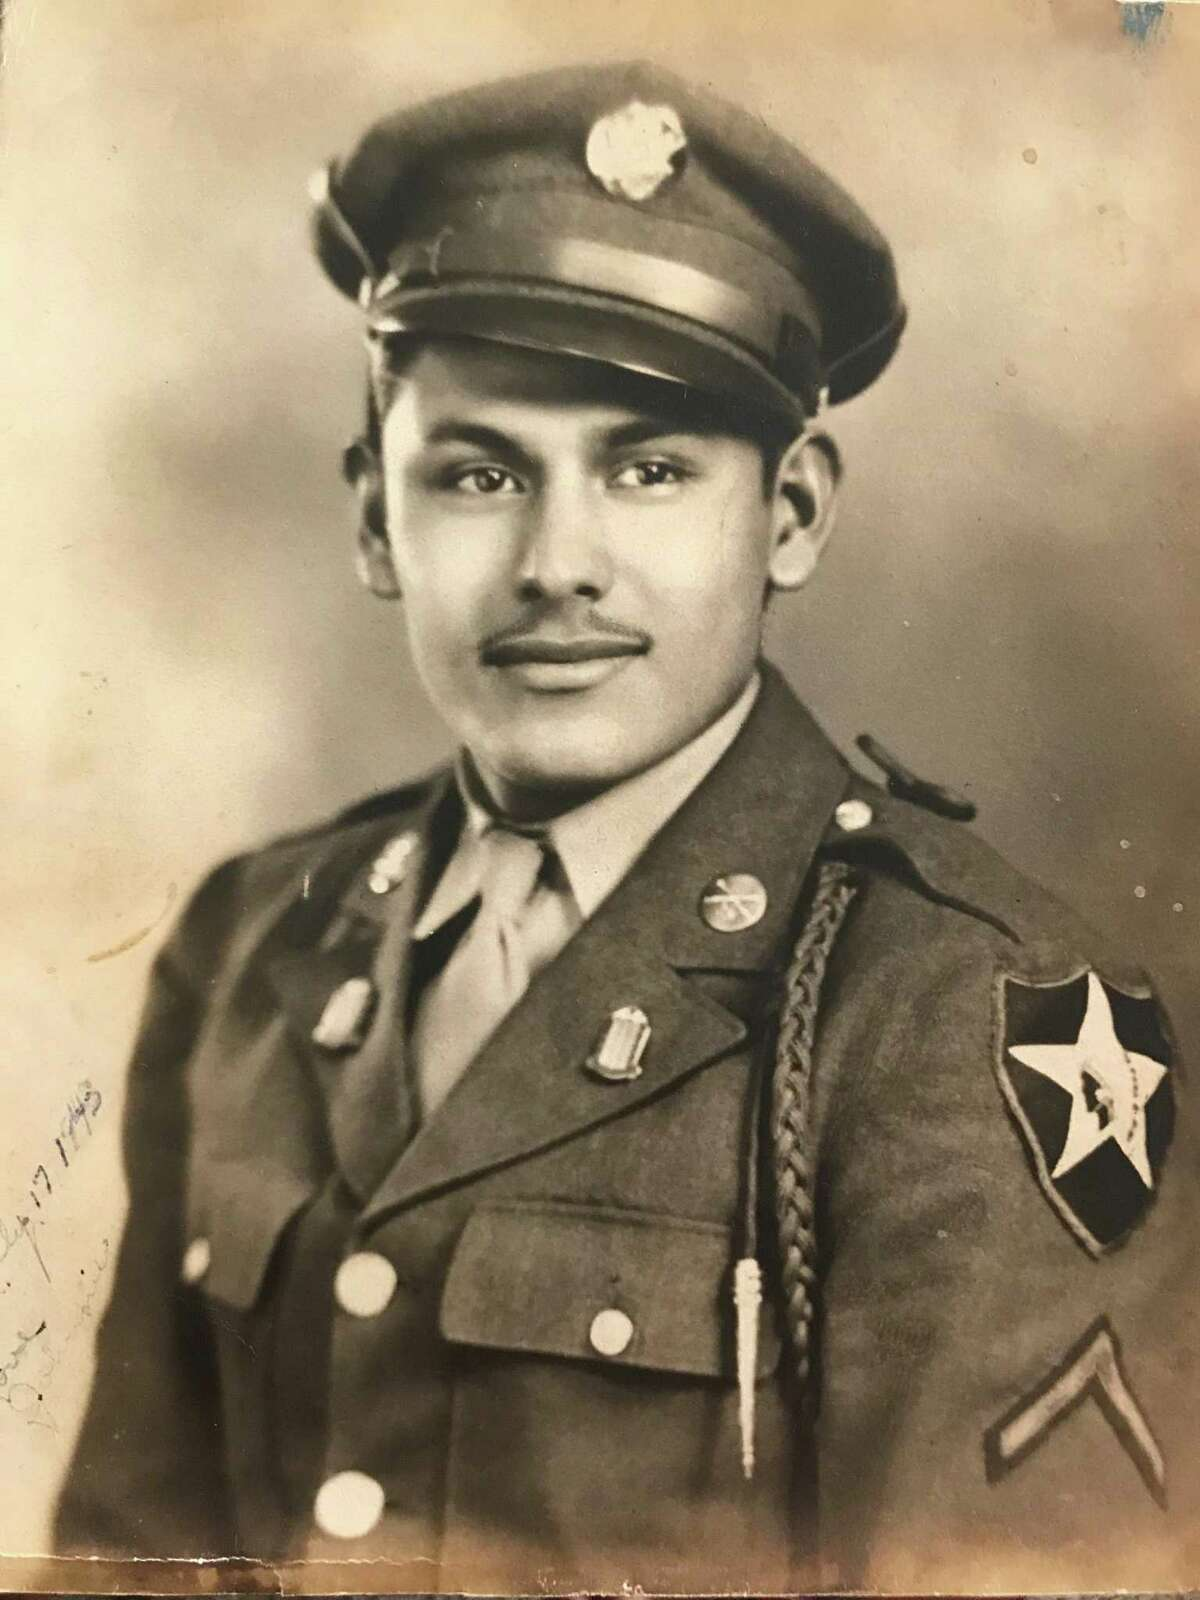 """Johnnie Marino was a U.S. soldier from Texas who liberated concentration camps at the end of World War II. He, and others, are featured in a new exhibit at the Holocaust Museum Houston, titled """"The Texas Liberator: Witness to the Holocaust."""""""